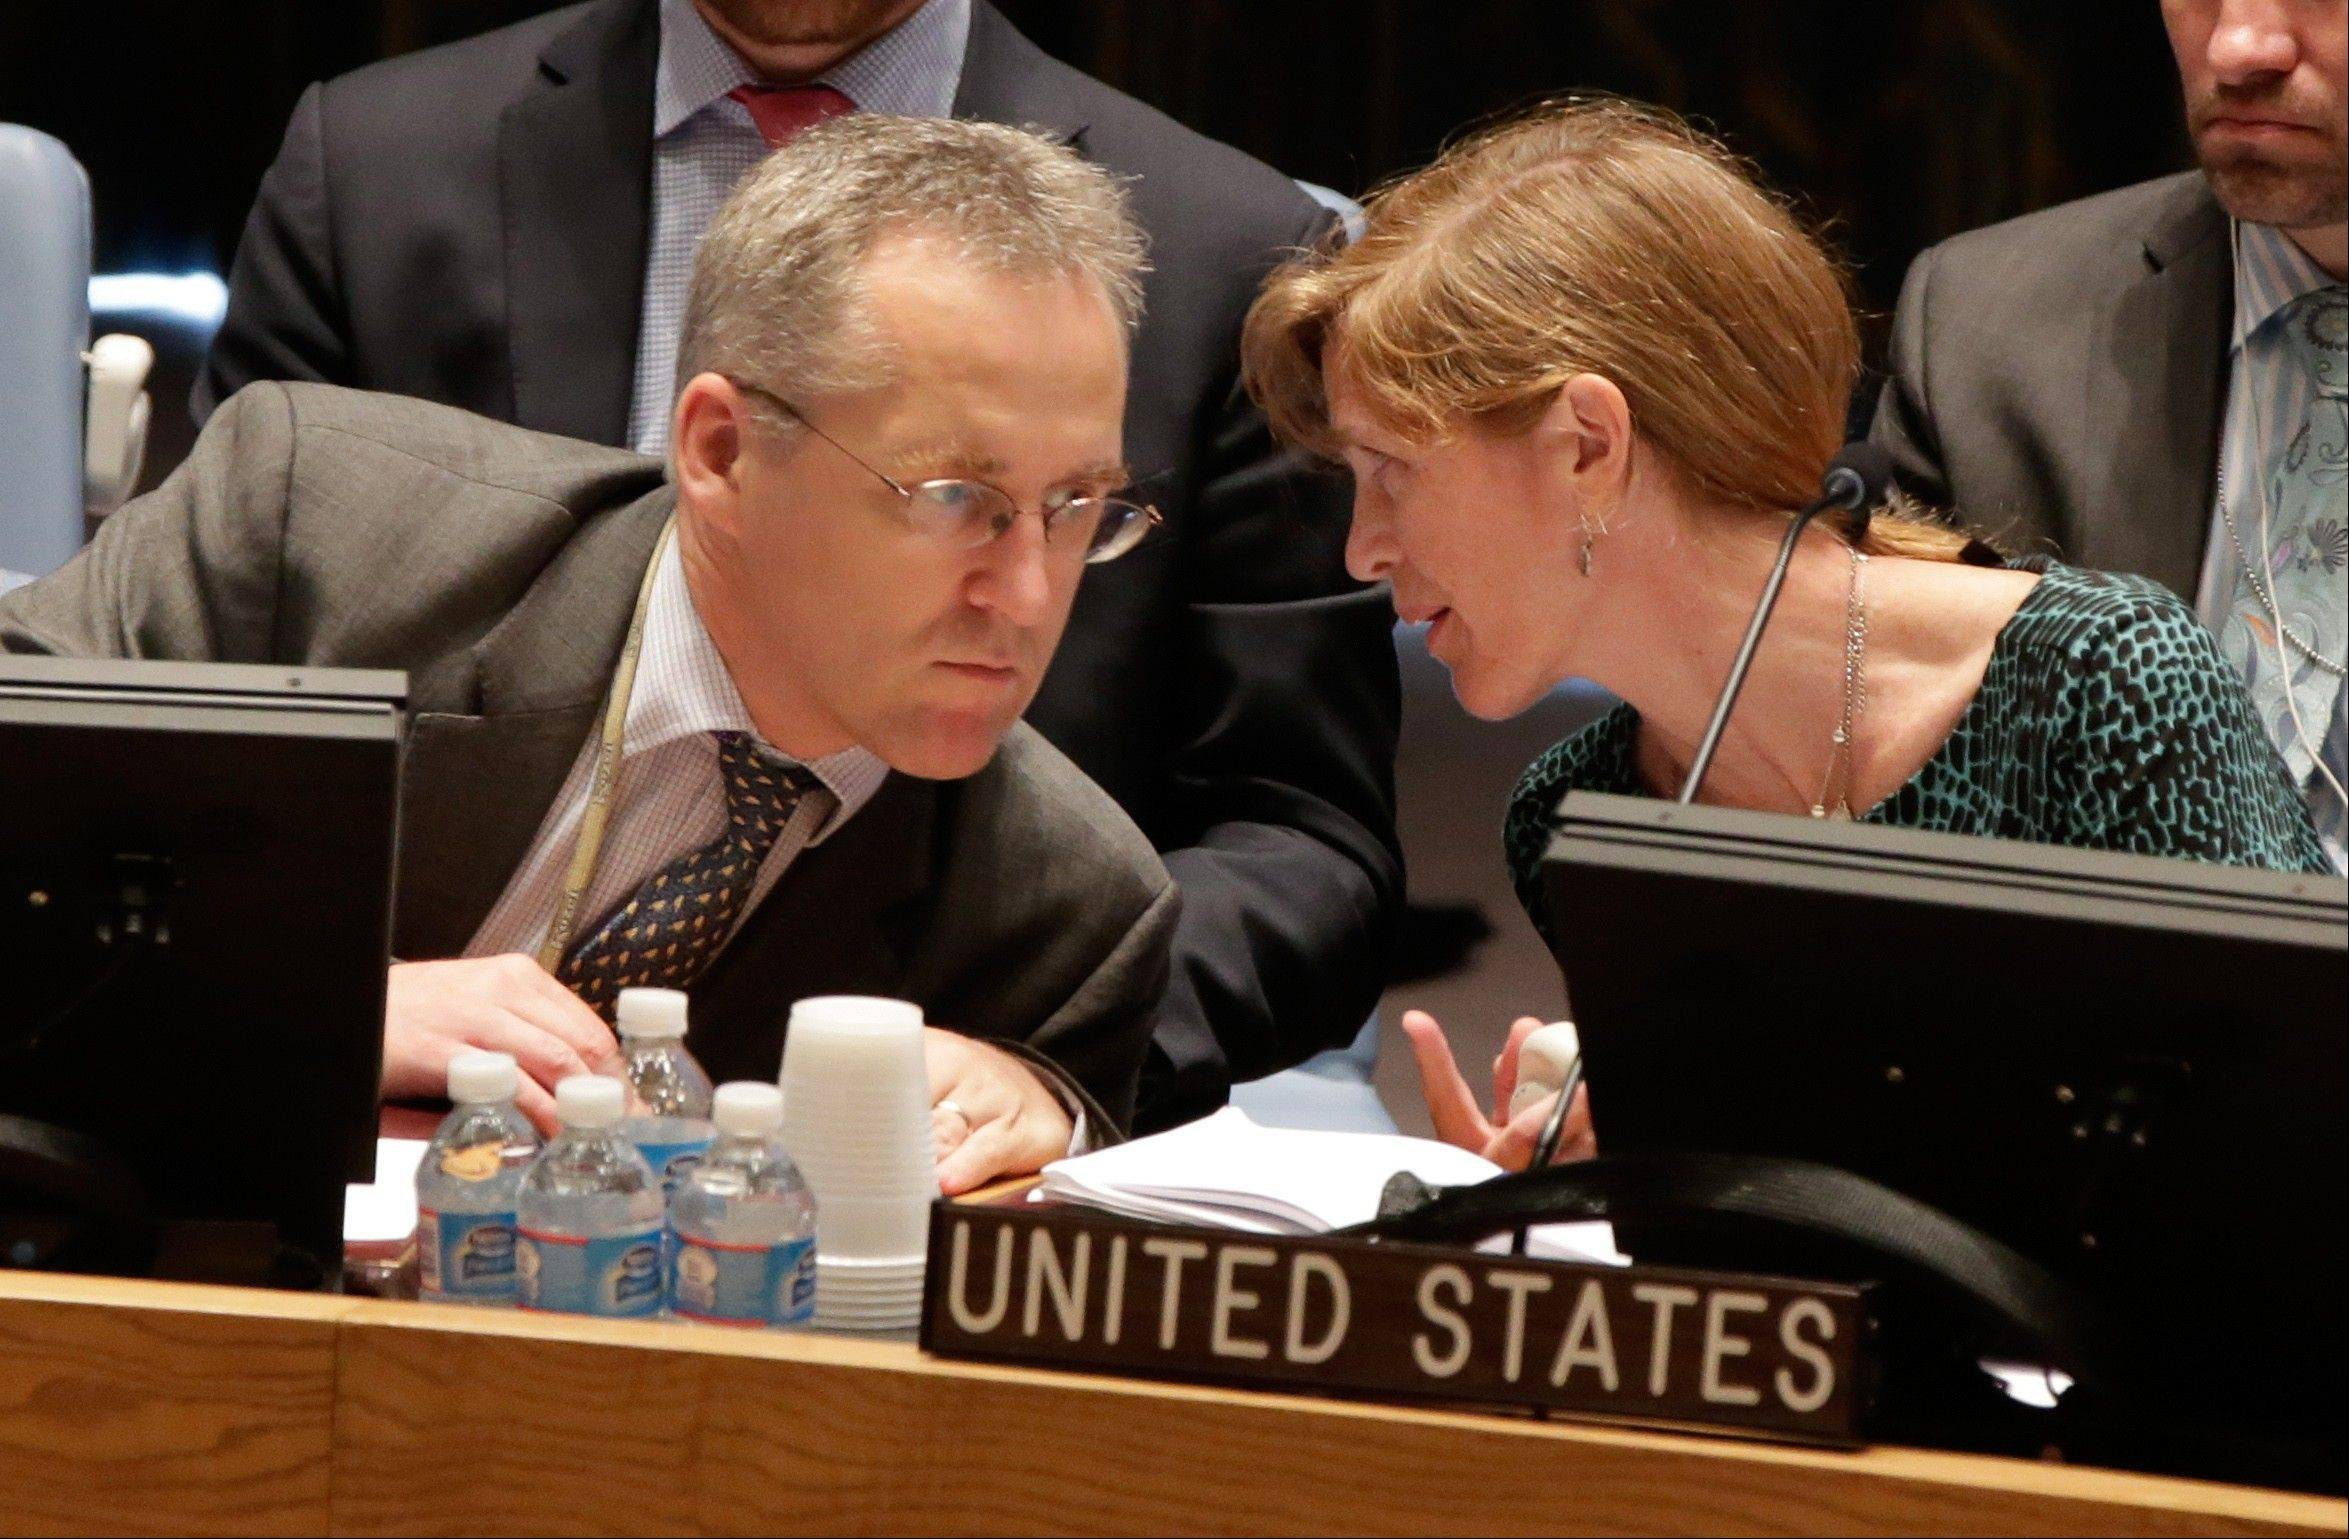 U.S. Ambassador Samantha Power talks with British delegate, Michael Tatham, in the United Nations Security Council Thursday. U.N. Secretary-General Ban Ki-moon said the inspection team in Syria is expected to complete its work Friday and report to him Saturday.